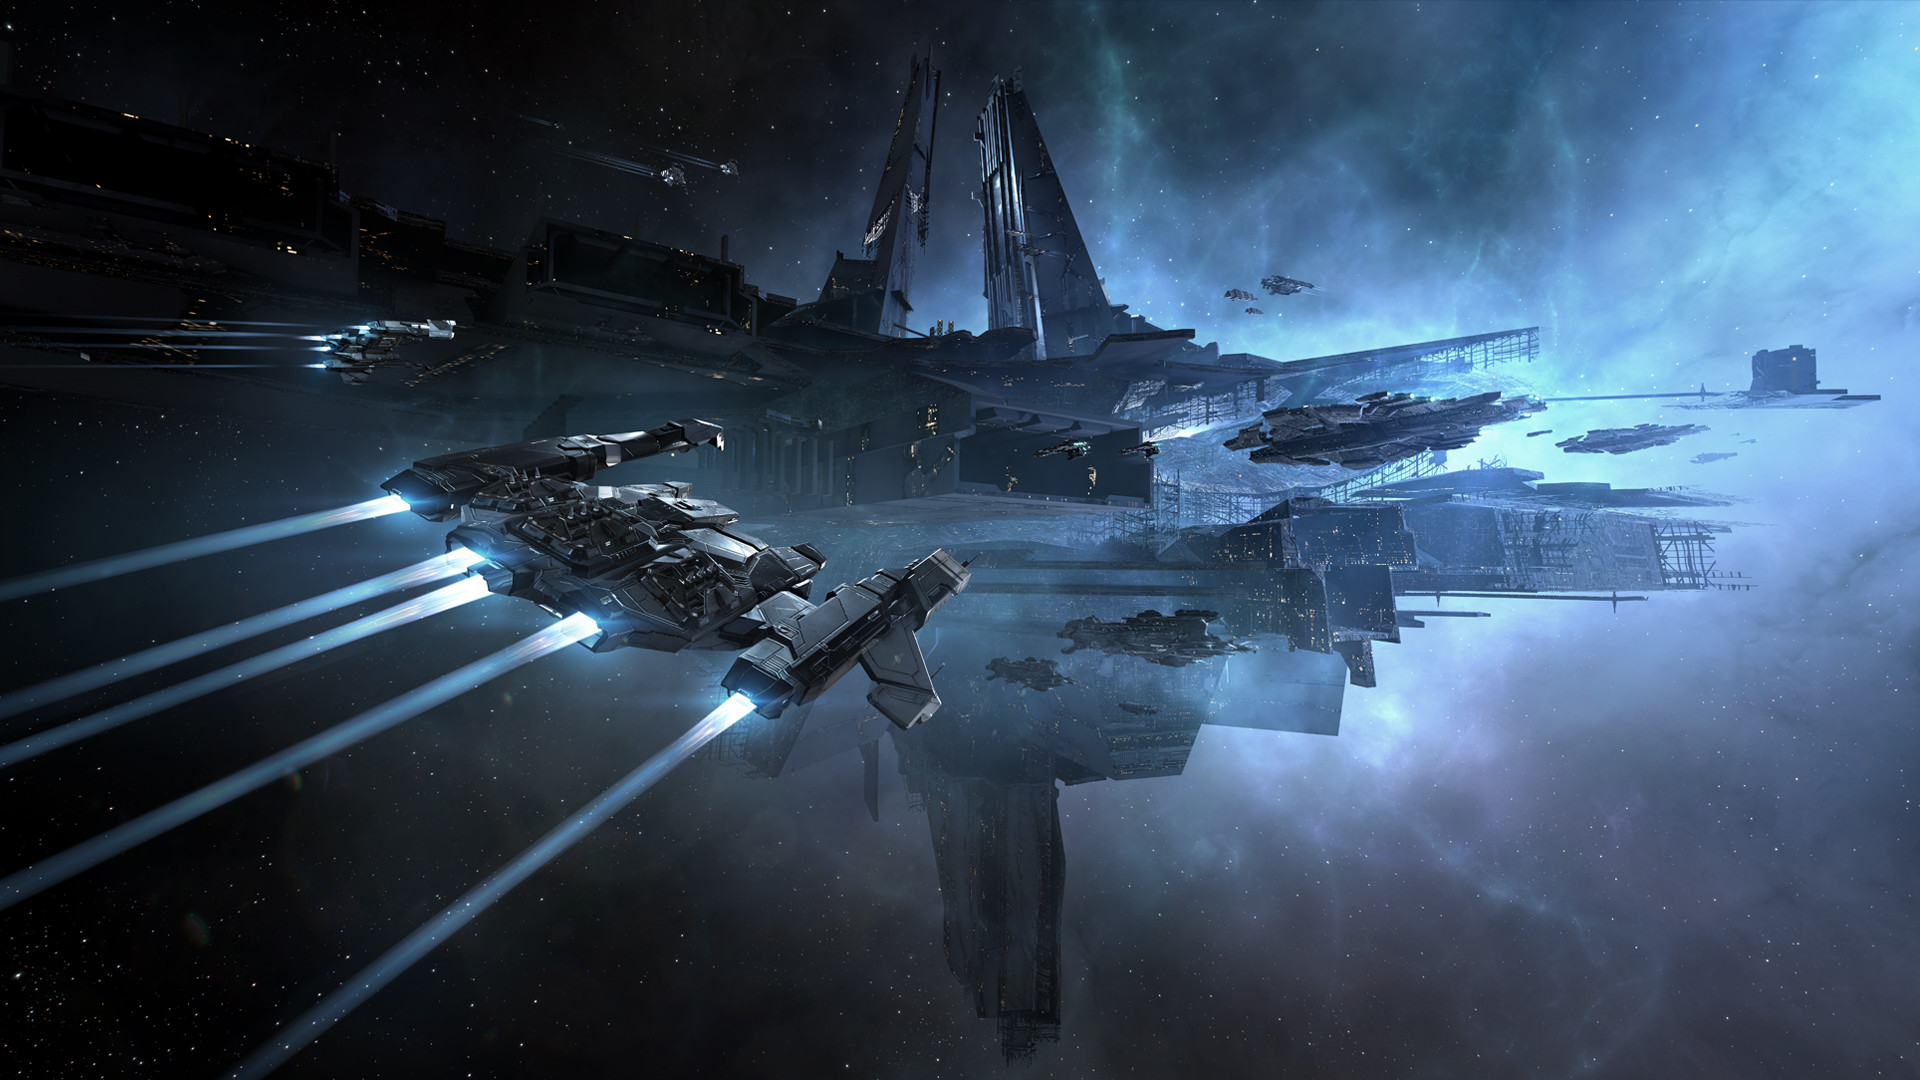 Eve Online alliance crumbles thanks to coup, online tumult bleeds into real-world threats